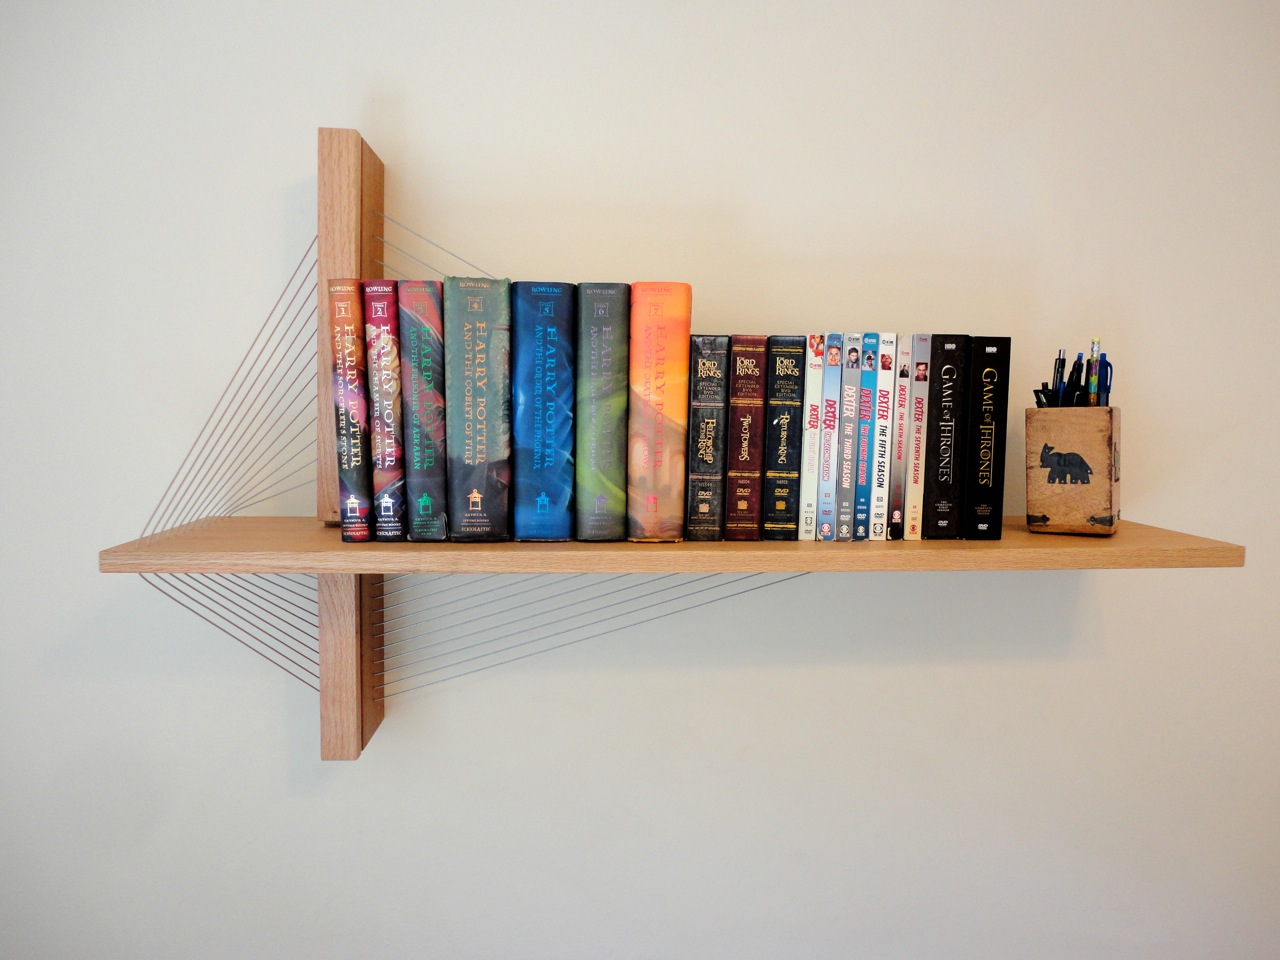 Awesome furniture are held together only by tension Harry Potter and Game of Thrones